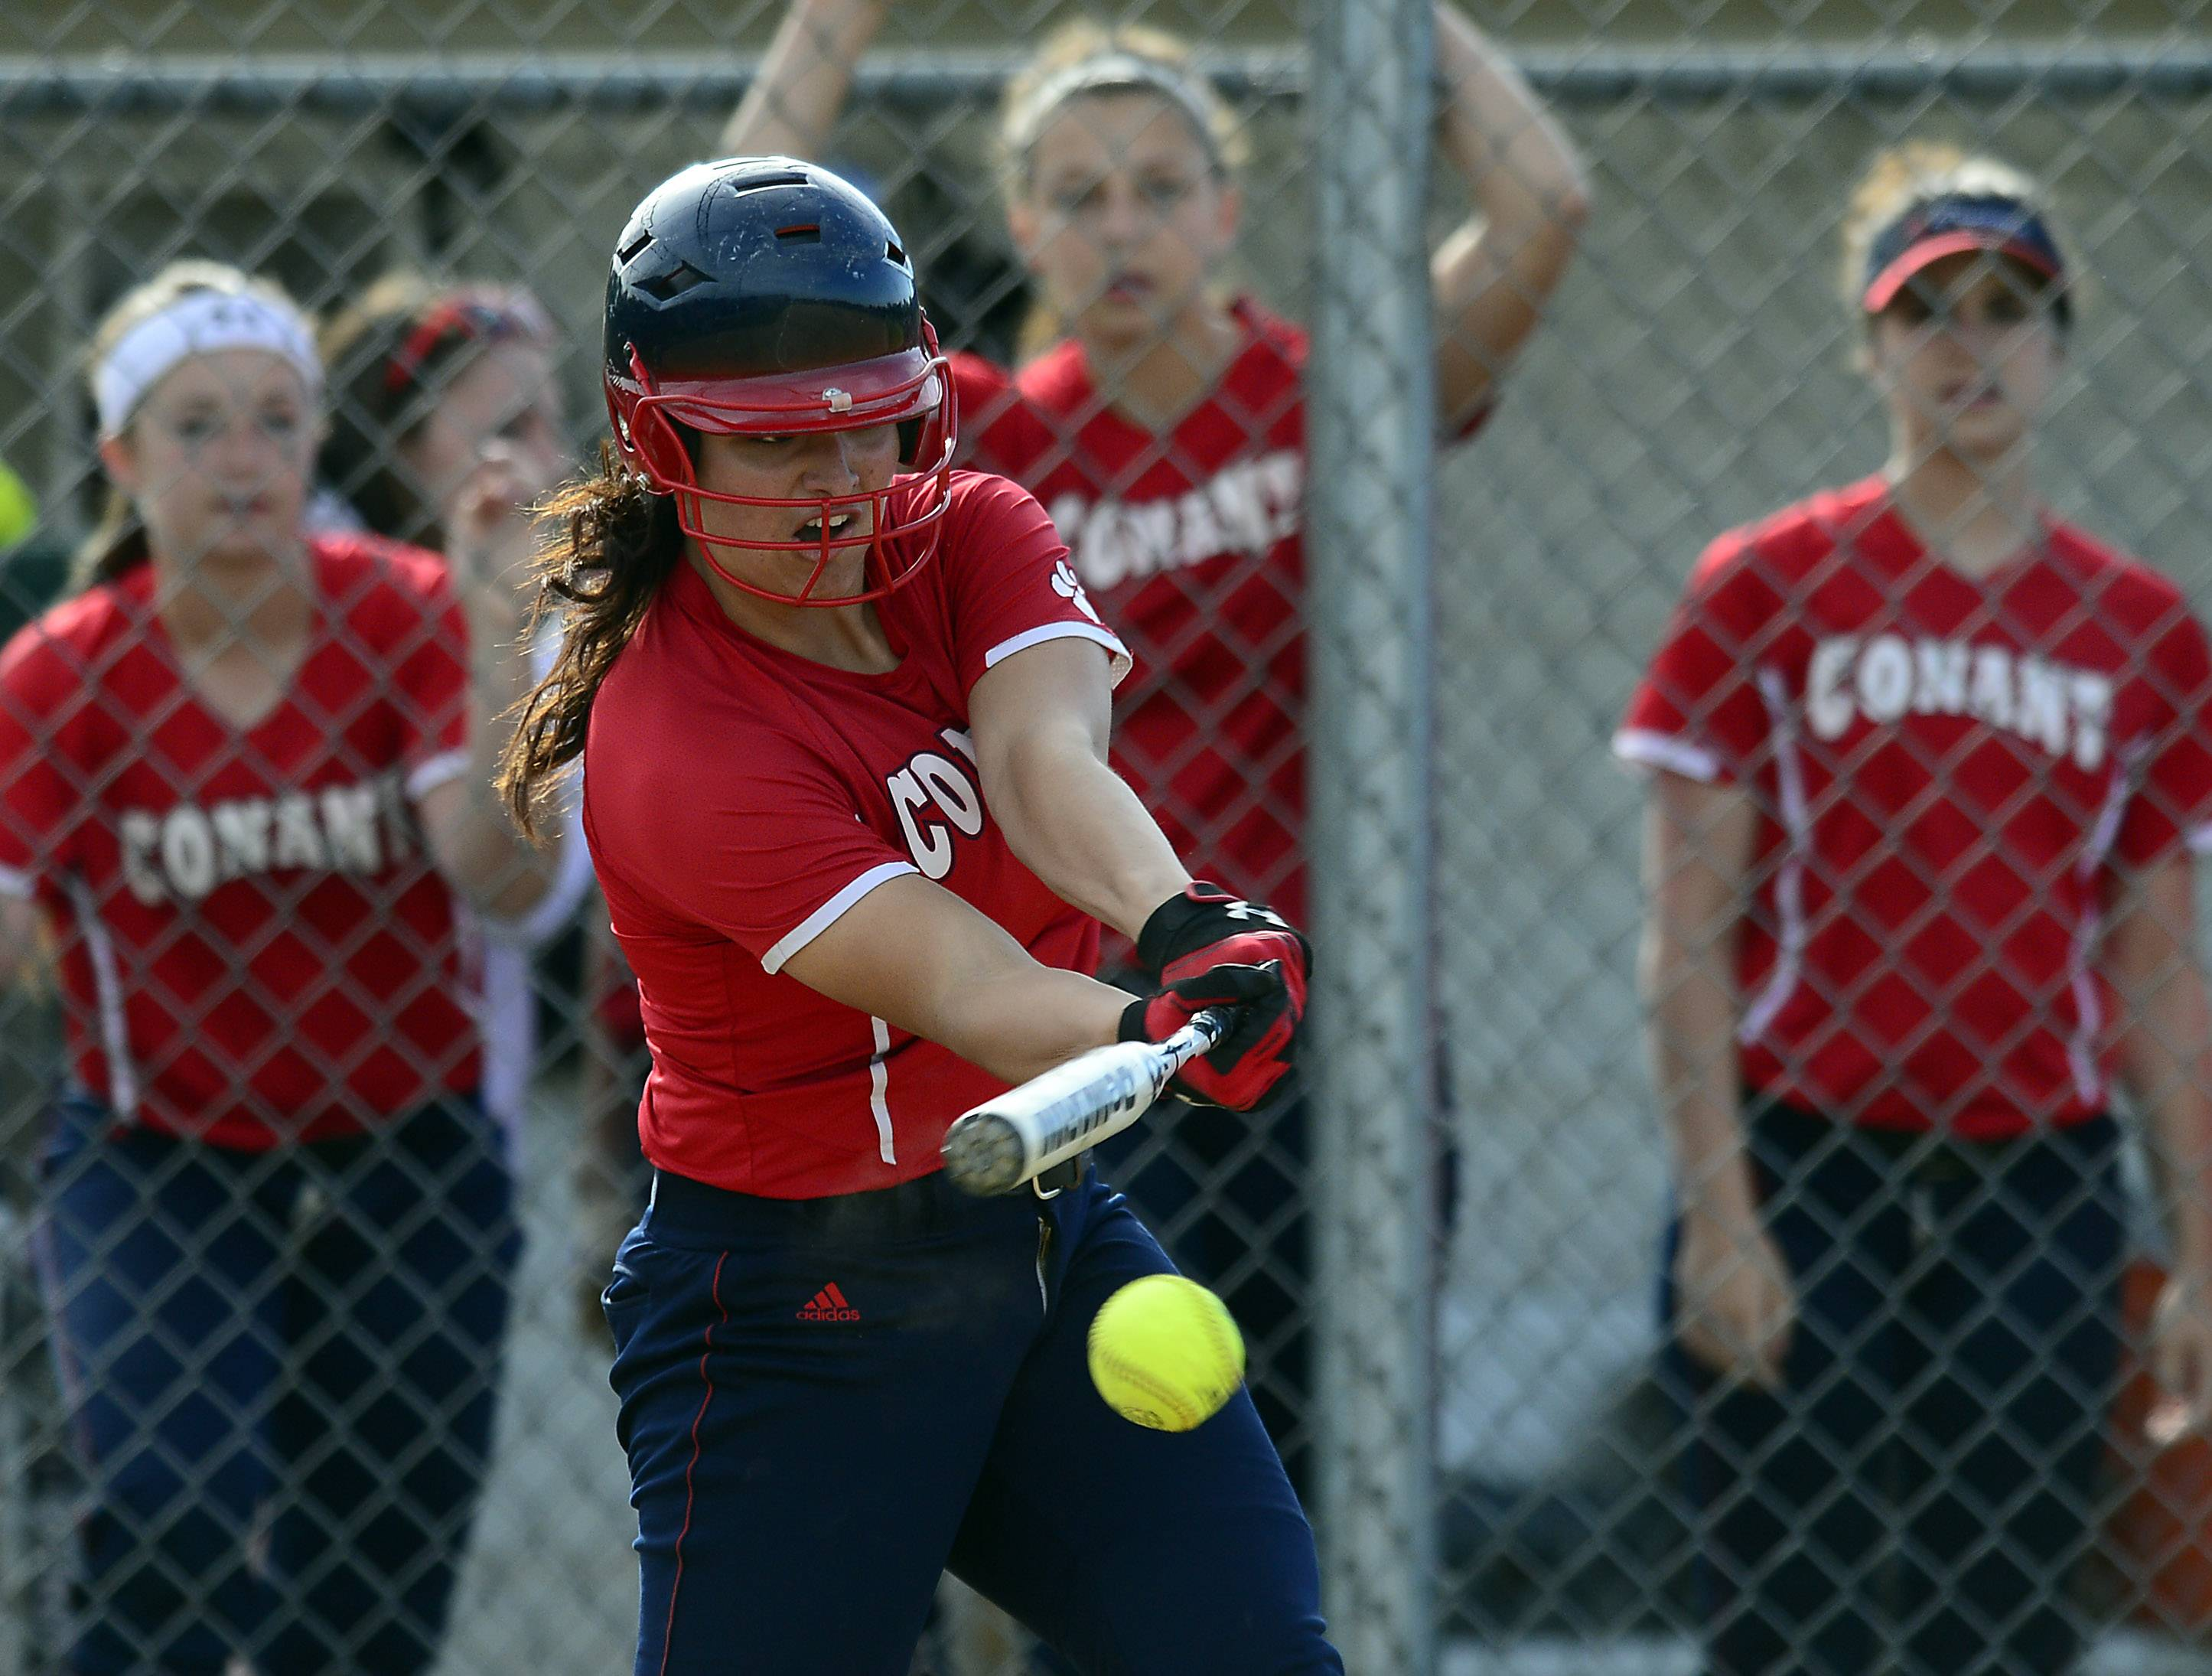 Conant's Alissa Wachal reached second base in the bottom of the fourth inning in the Mid-Suburban League championship softball game against Buffalo Grove at Conant on Thursday.